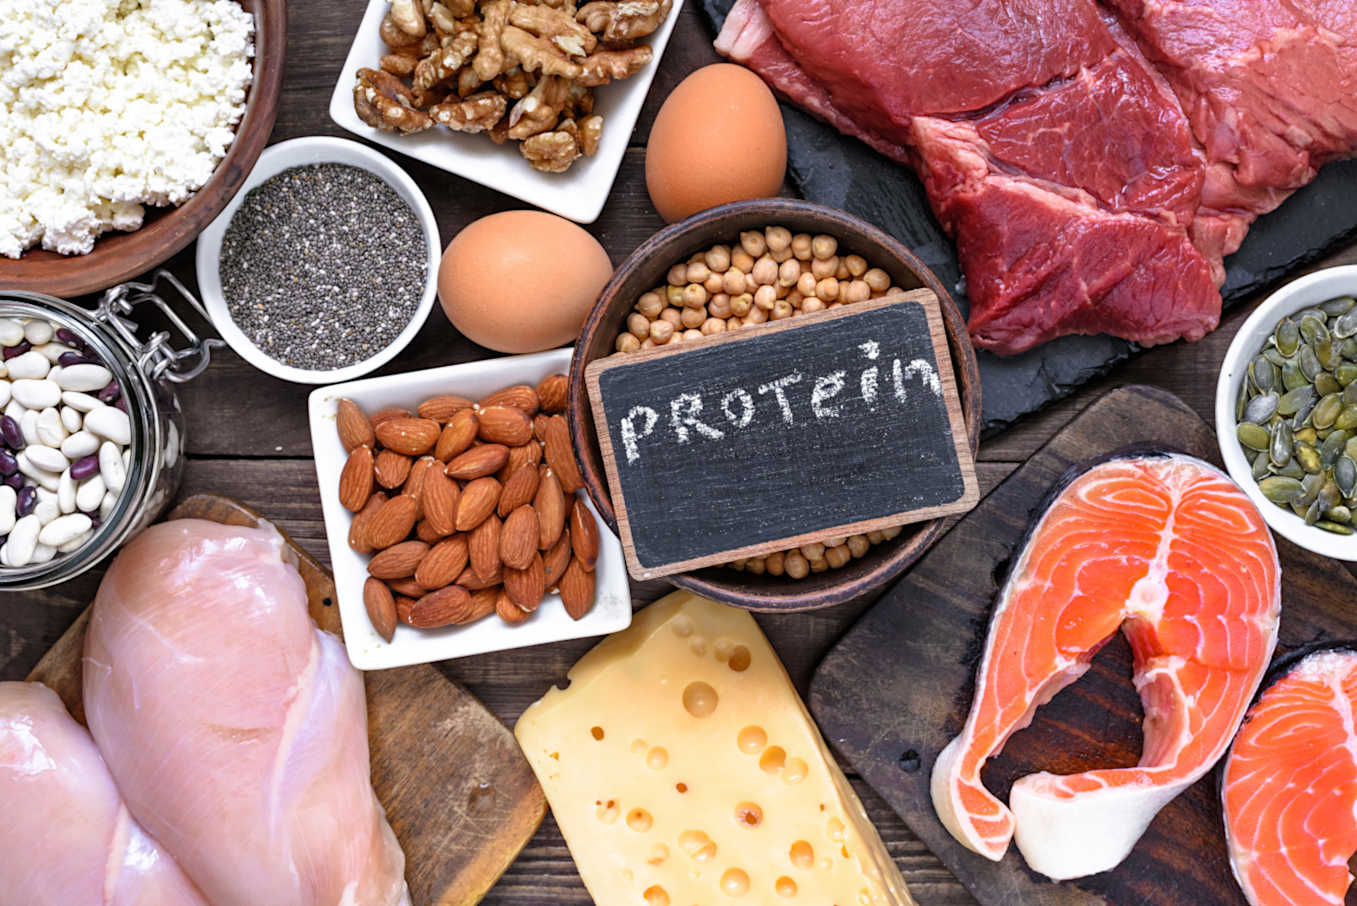 Can a high protein diet help you lose weight?